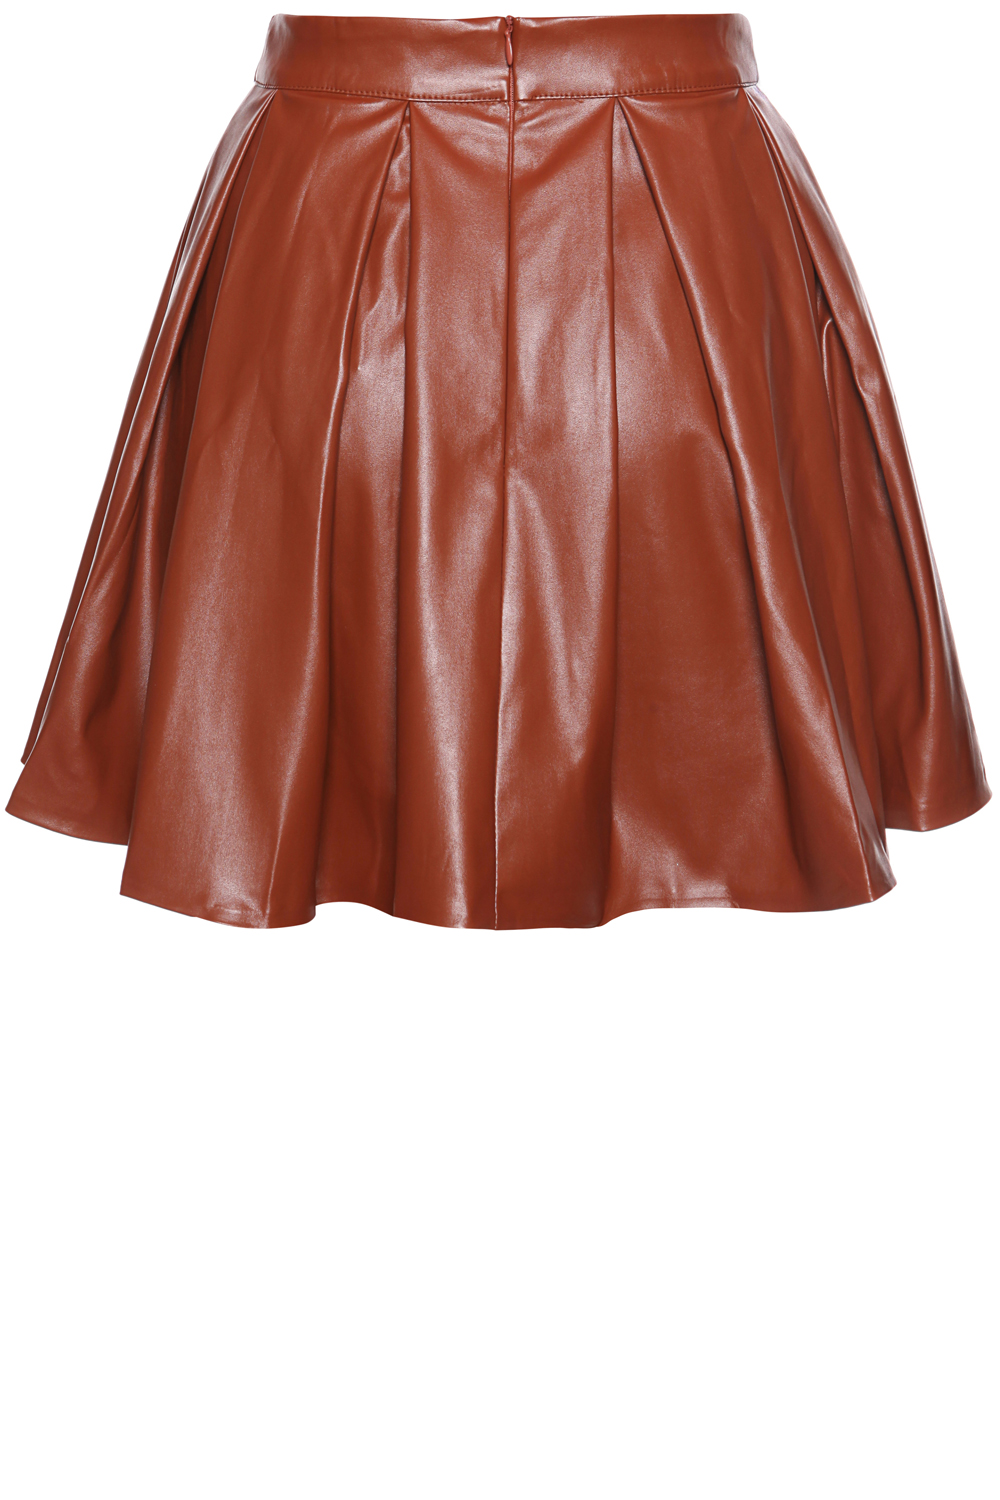 Brown Leather Pleated Skirt with Back Seam Zip Fastening